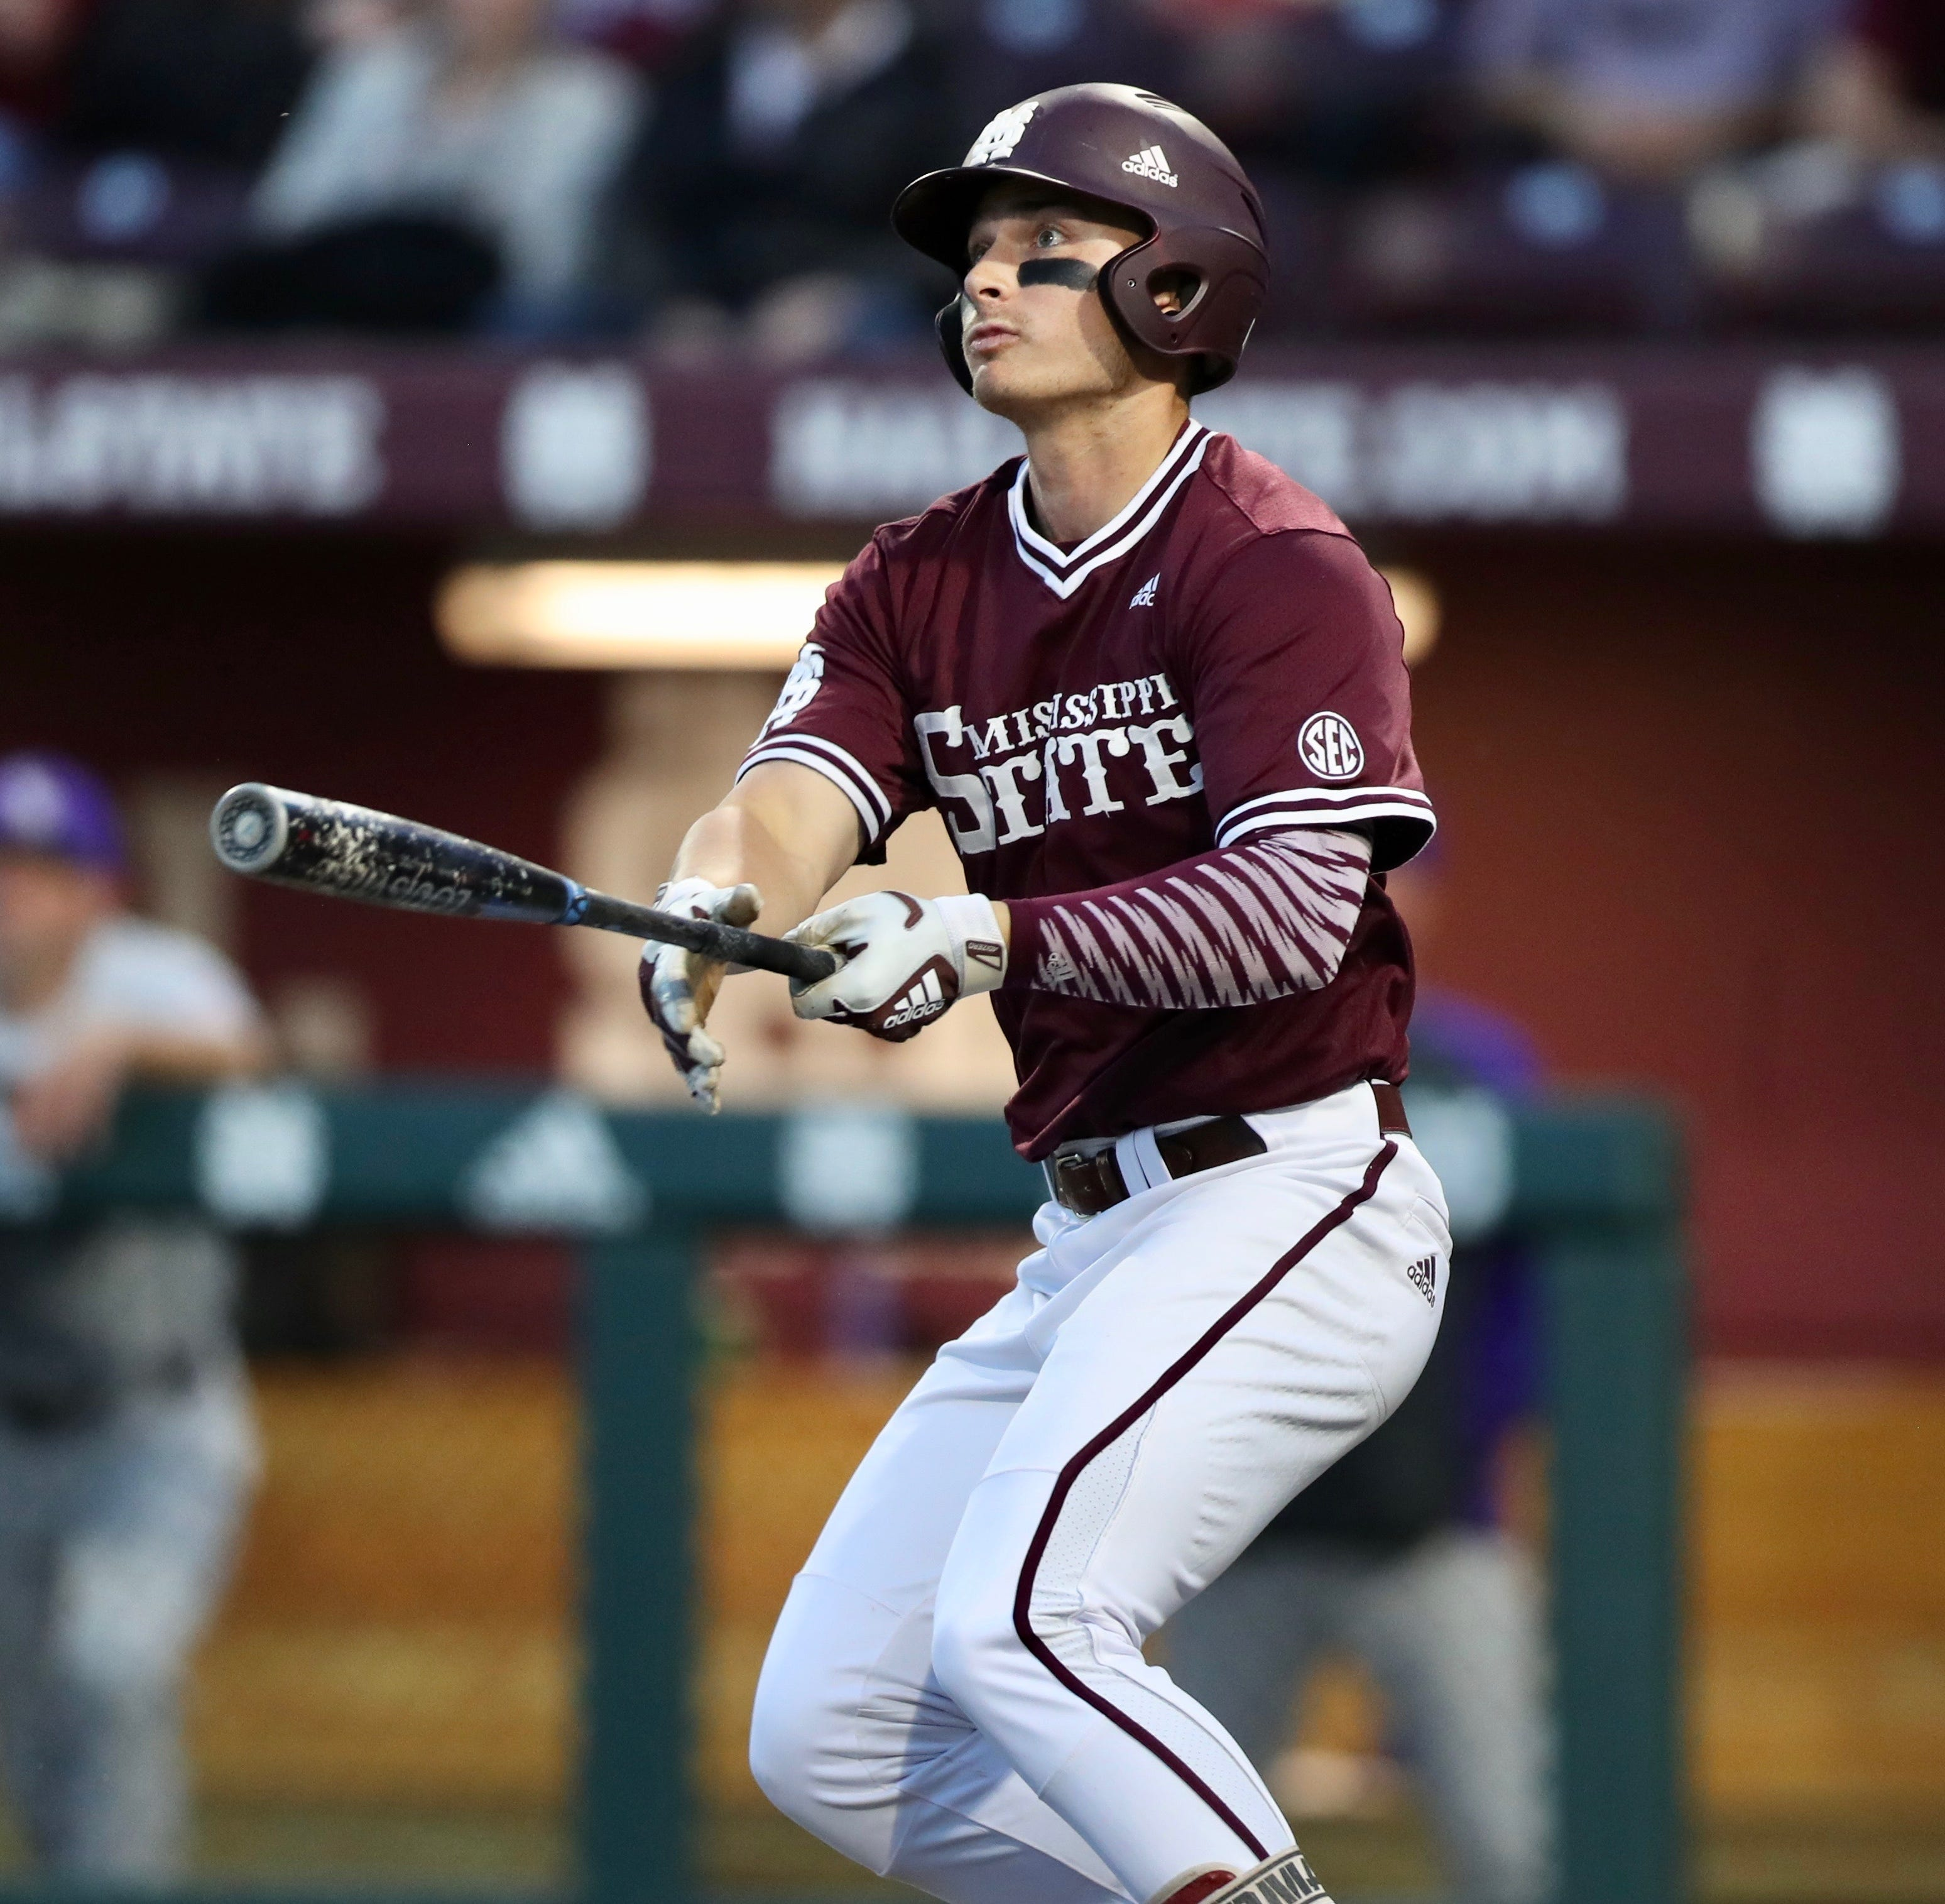 Mississippi State baseball opens series with win over LSU